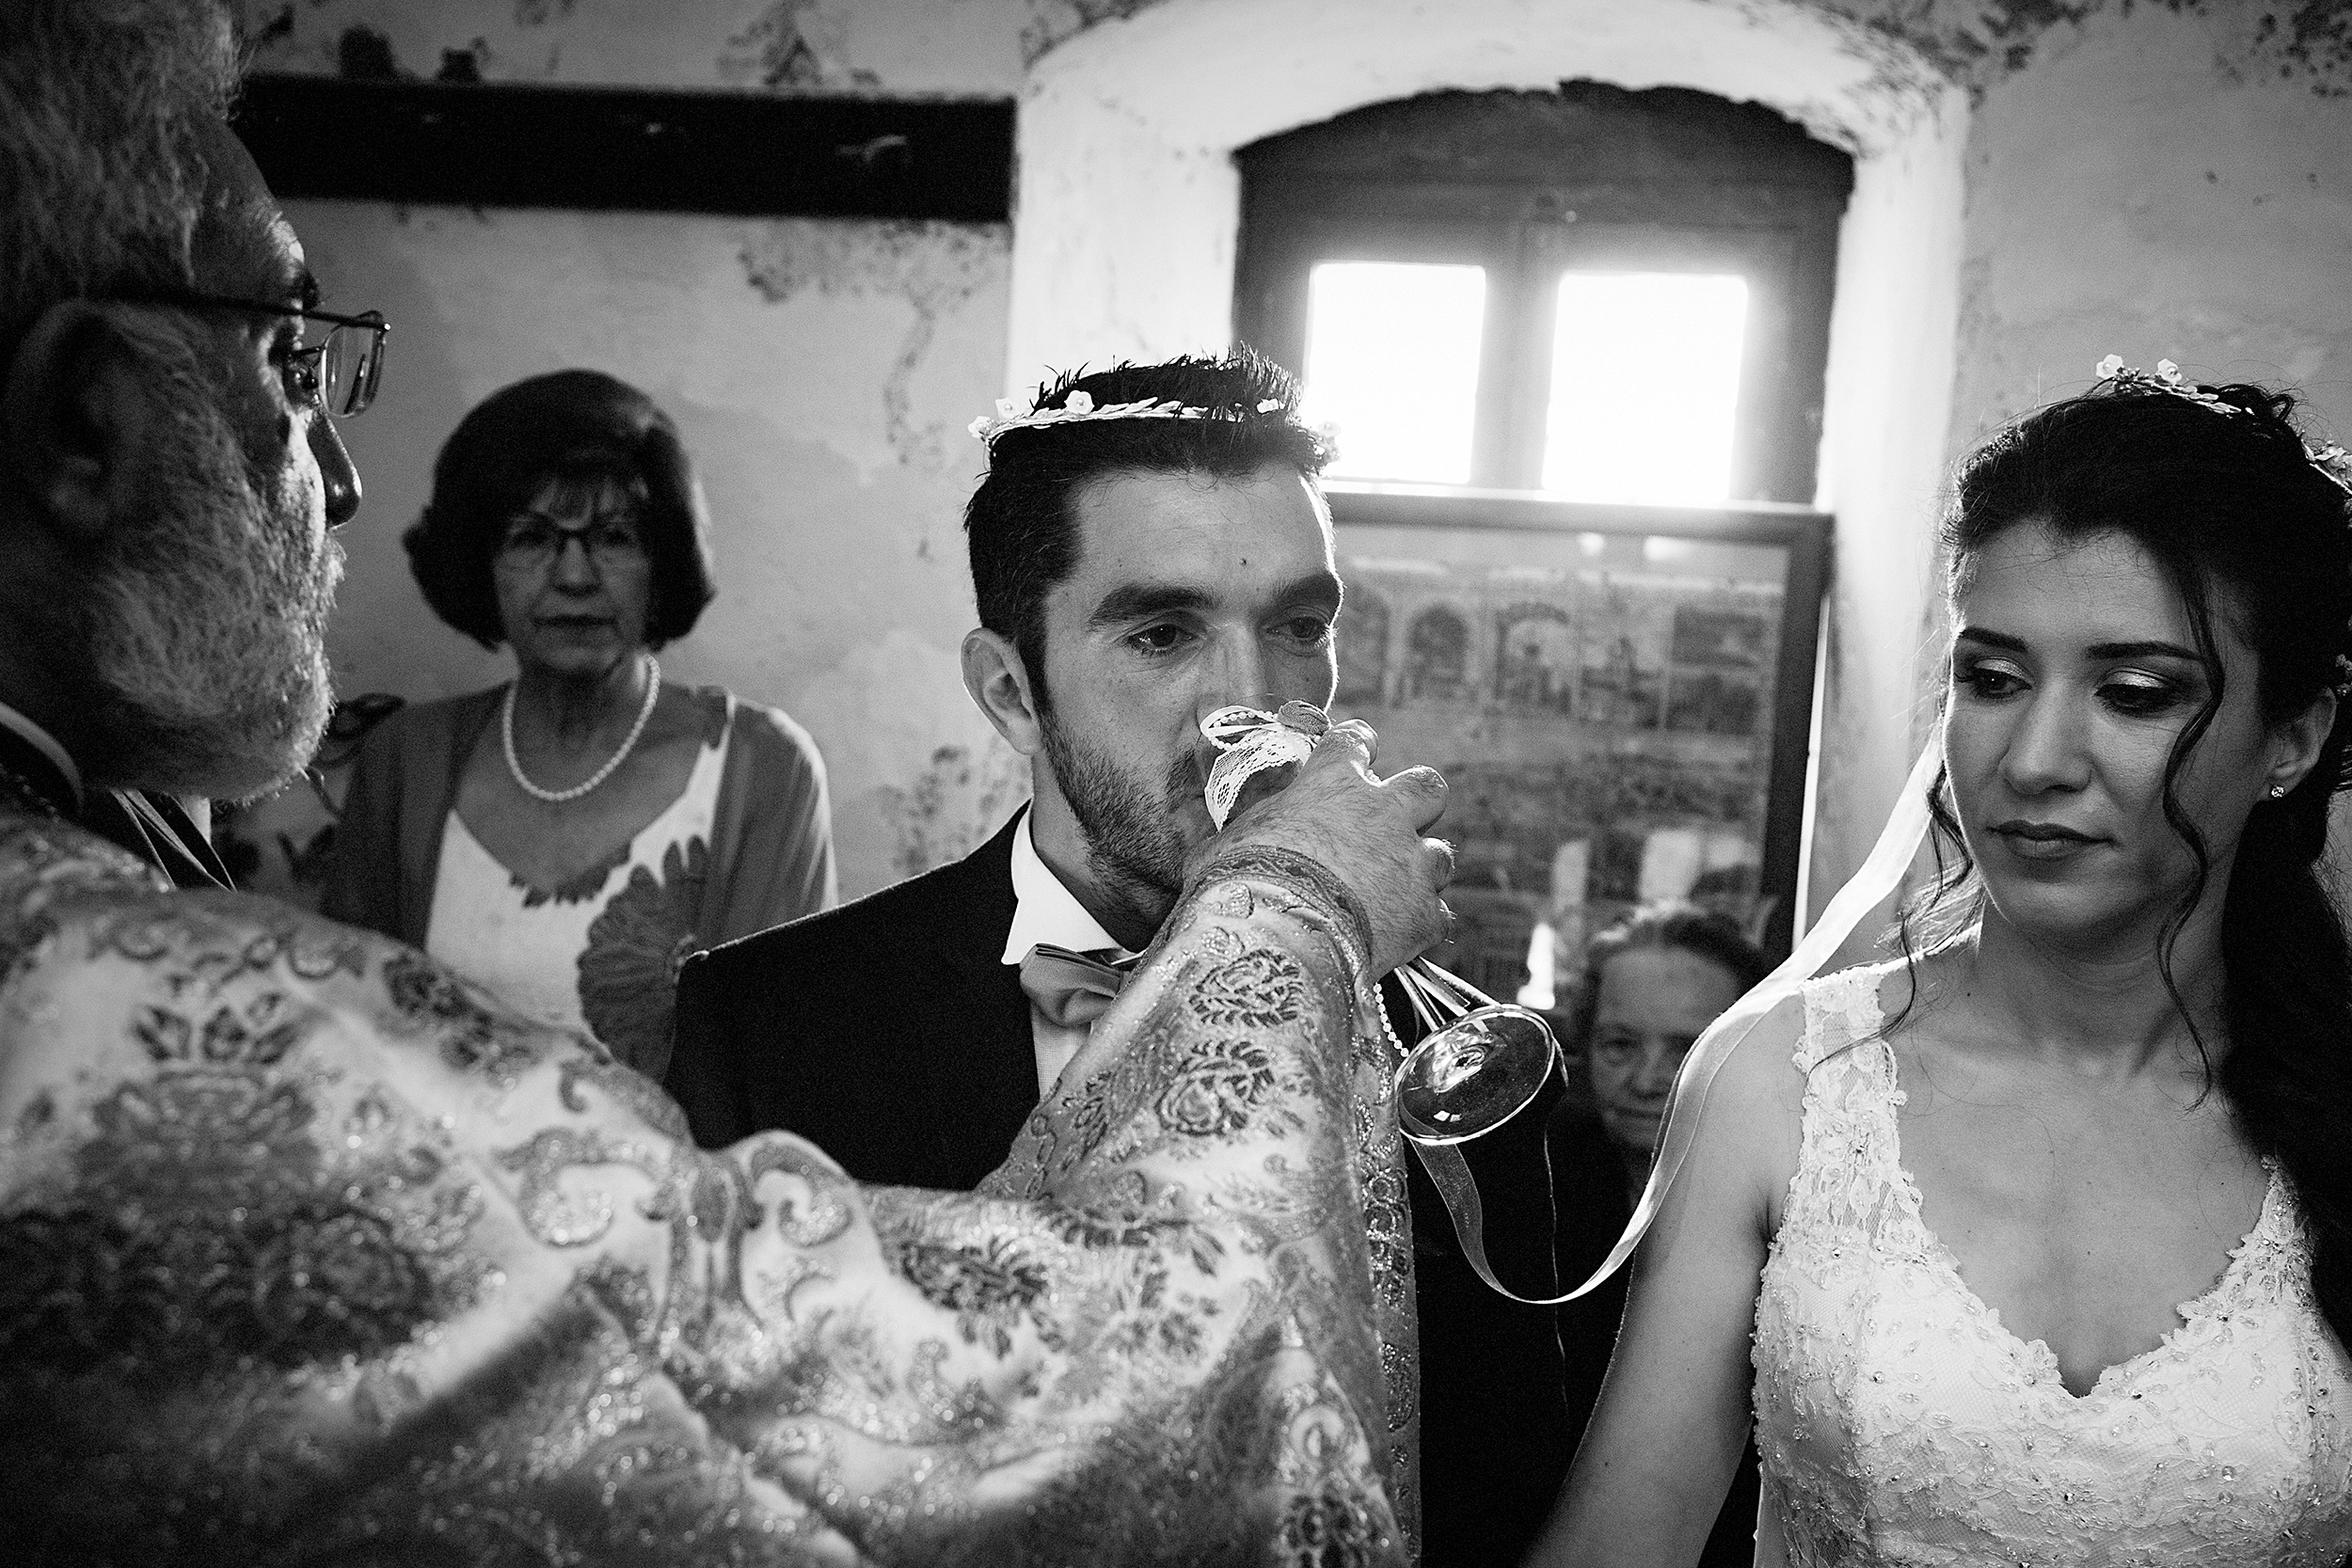 wedding ceremony © Alexandros Dalkos